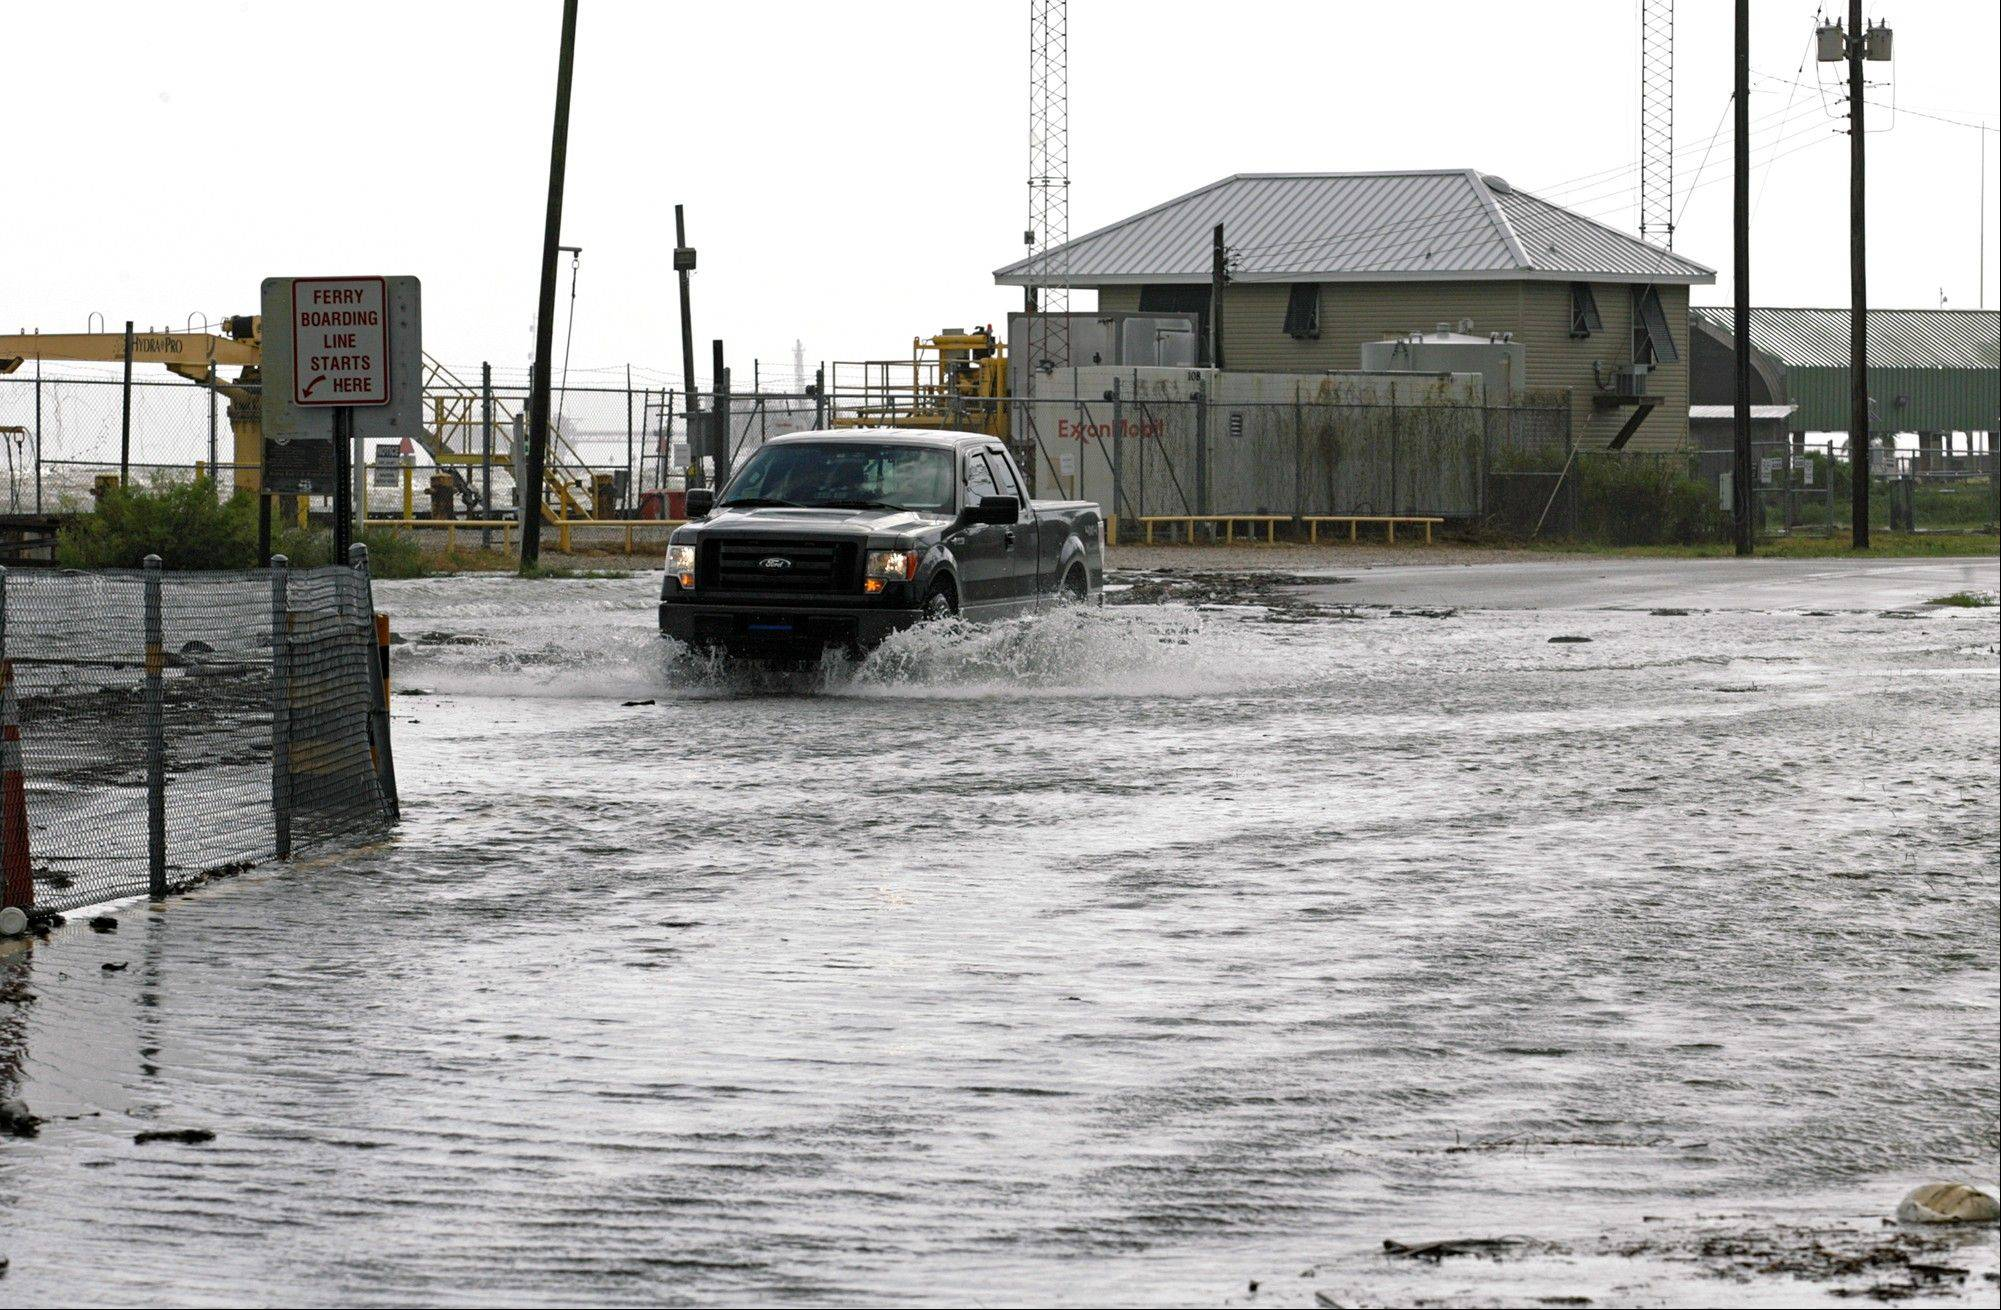 A truck makes its way along flooded Bienville Blvd. at the Dauphin Island Ferry landing Tuesday, Aug. 28, 2012 in Dauphin Island, Ala. as residents prepare for the landfall of Hurricane Isaac along the Gulf Coast.